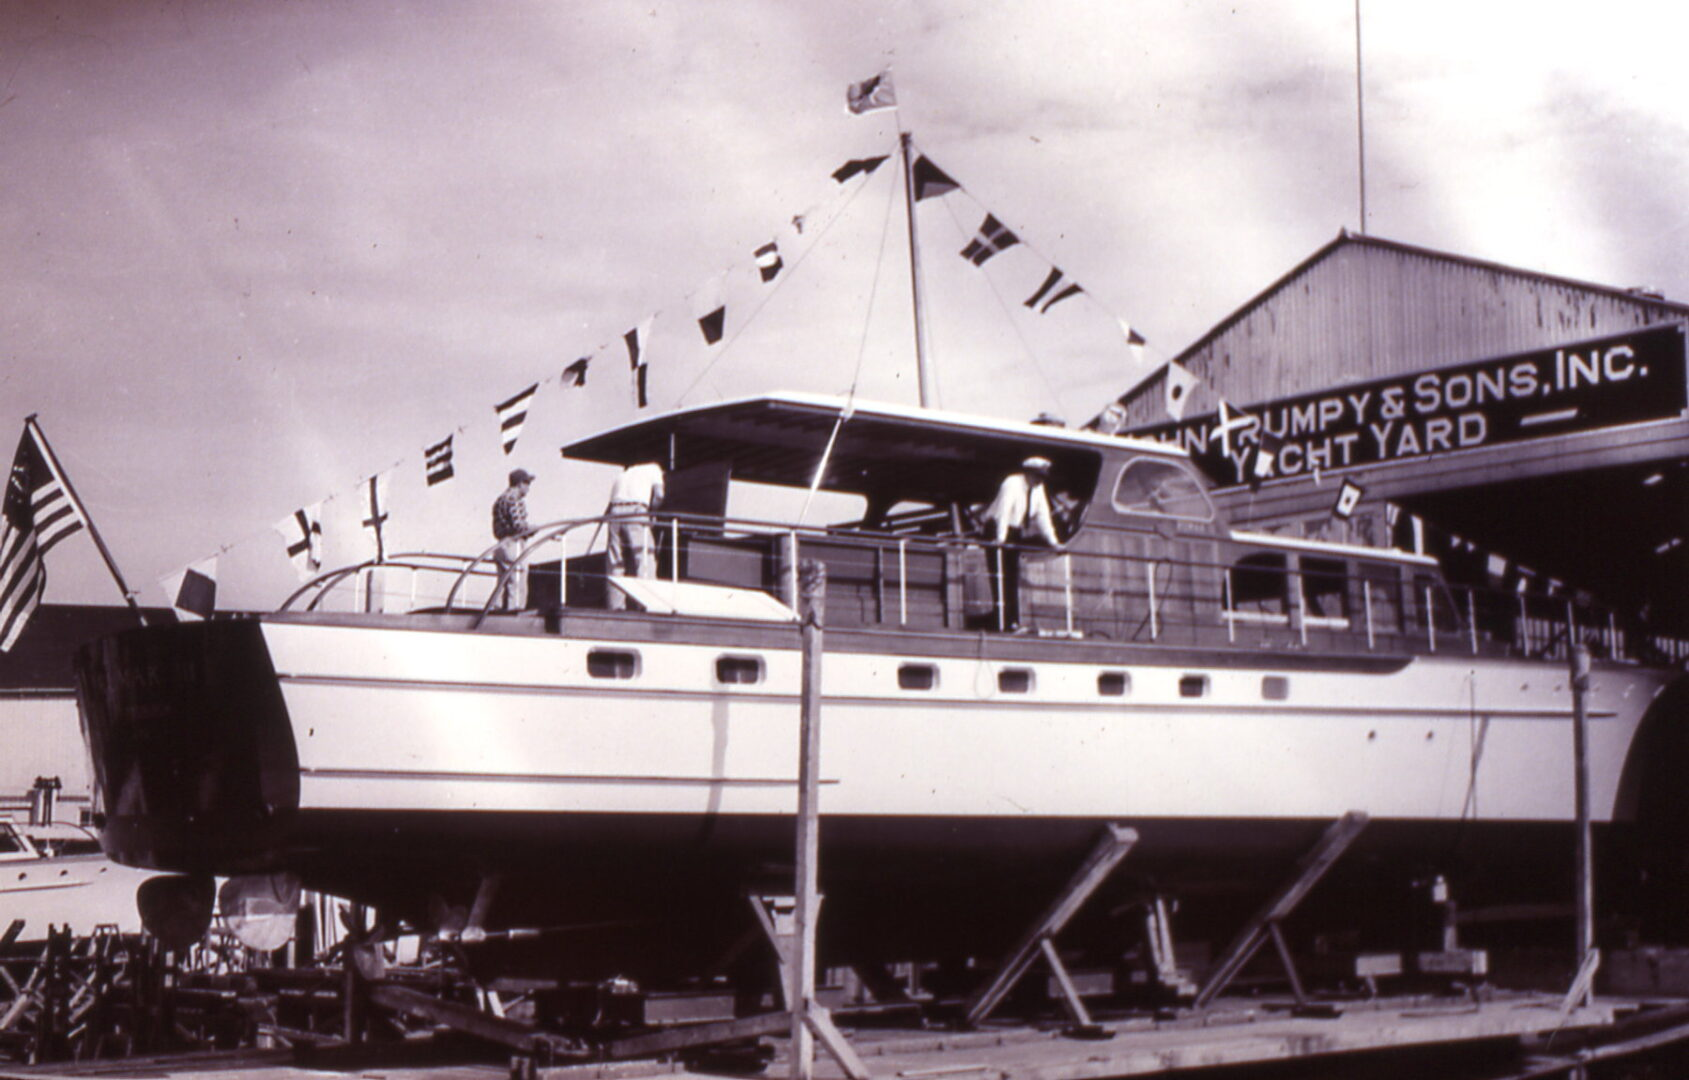 Circa 1950, a classic Trumpy yacht is launched into Spa Creek amid fanfare and flags, across from downtown historic Annapolis.